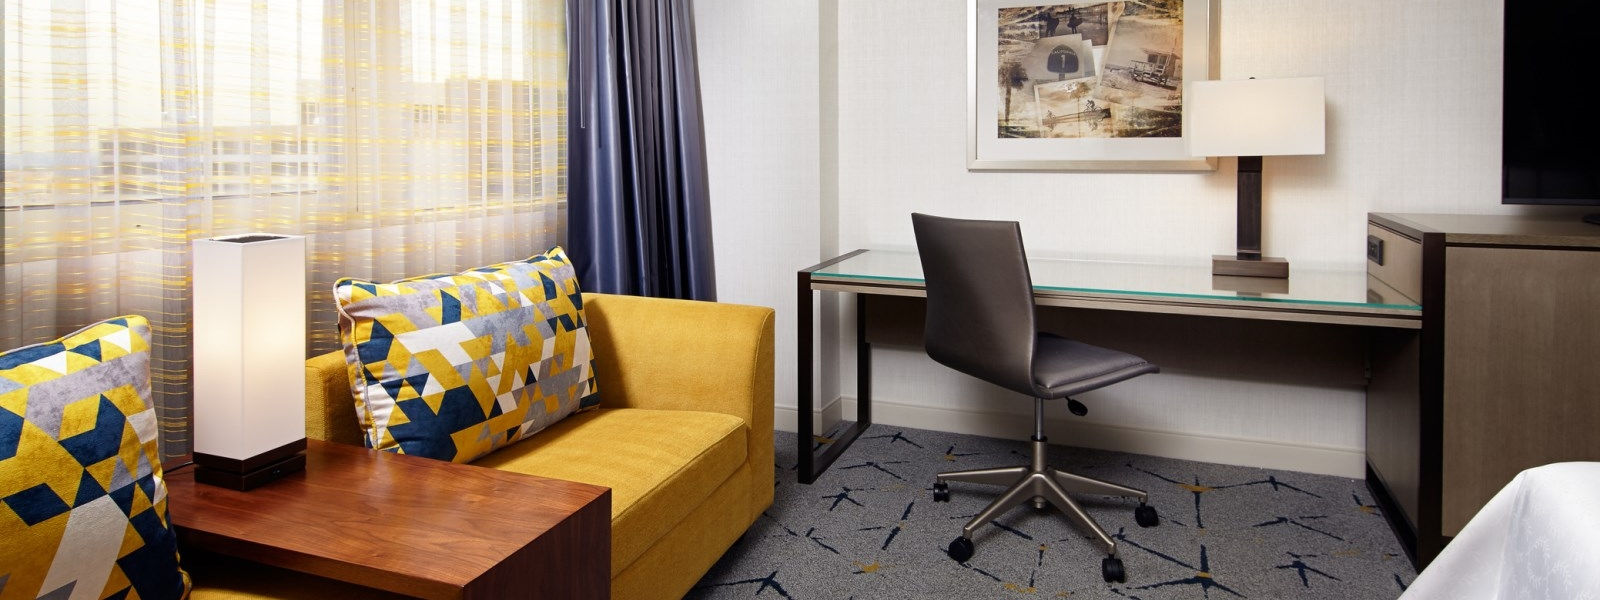 Sheraton LAX Hotel Features - Guest Rooms